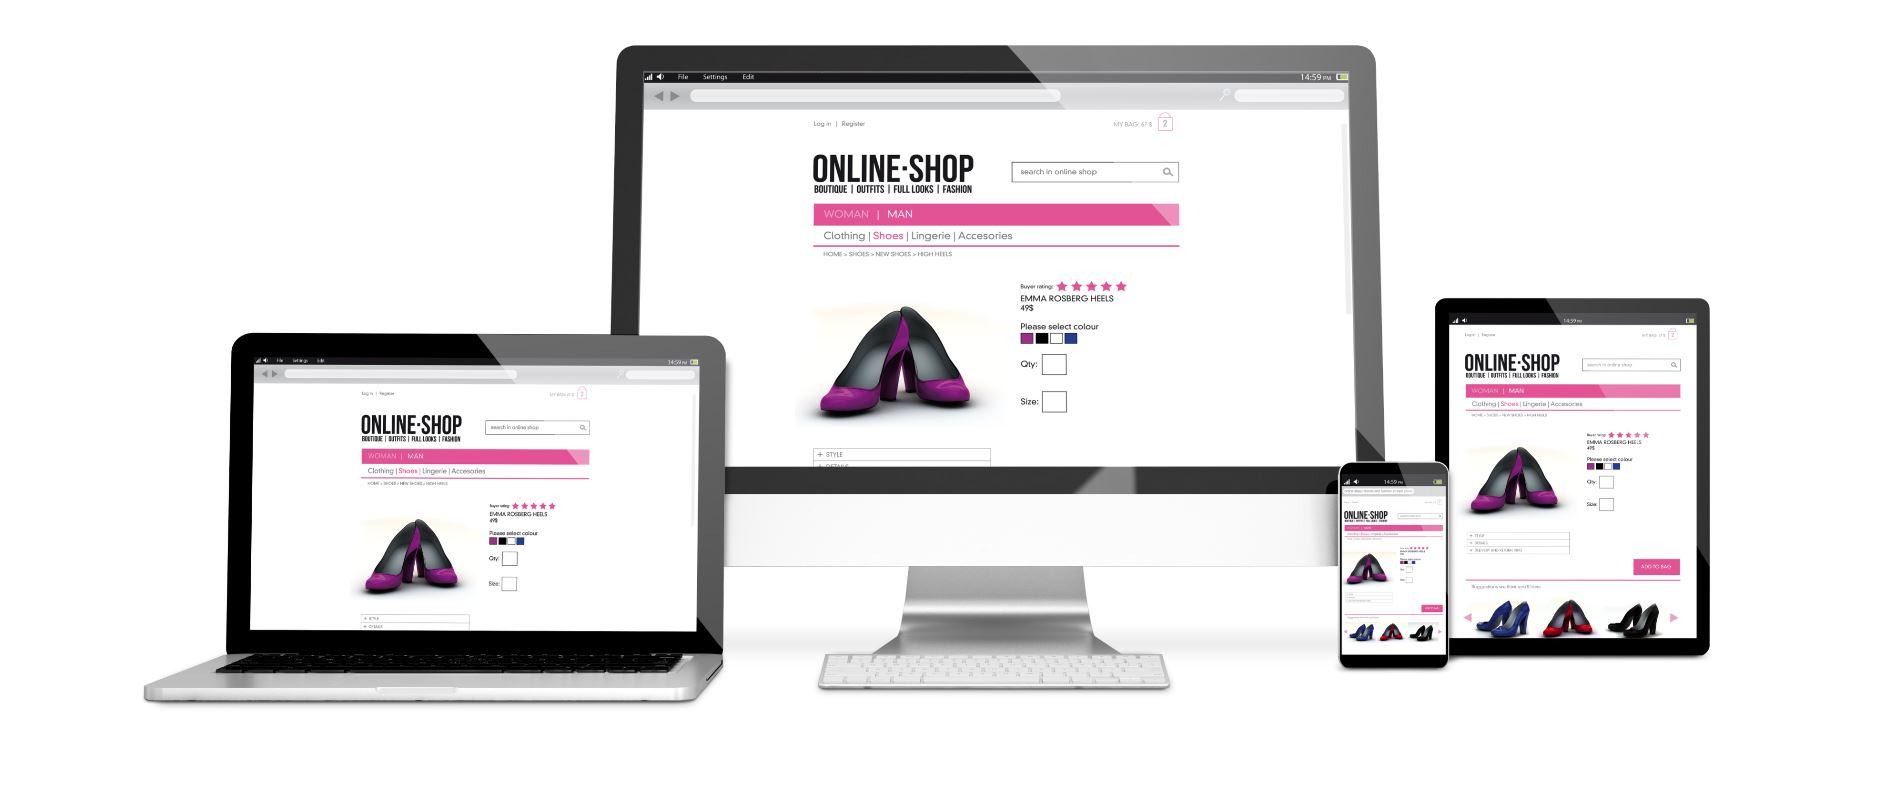 website design with ecommerce